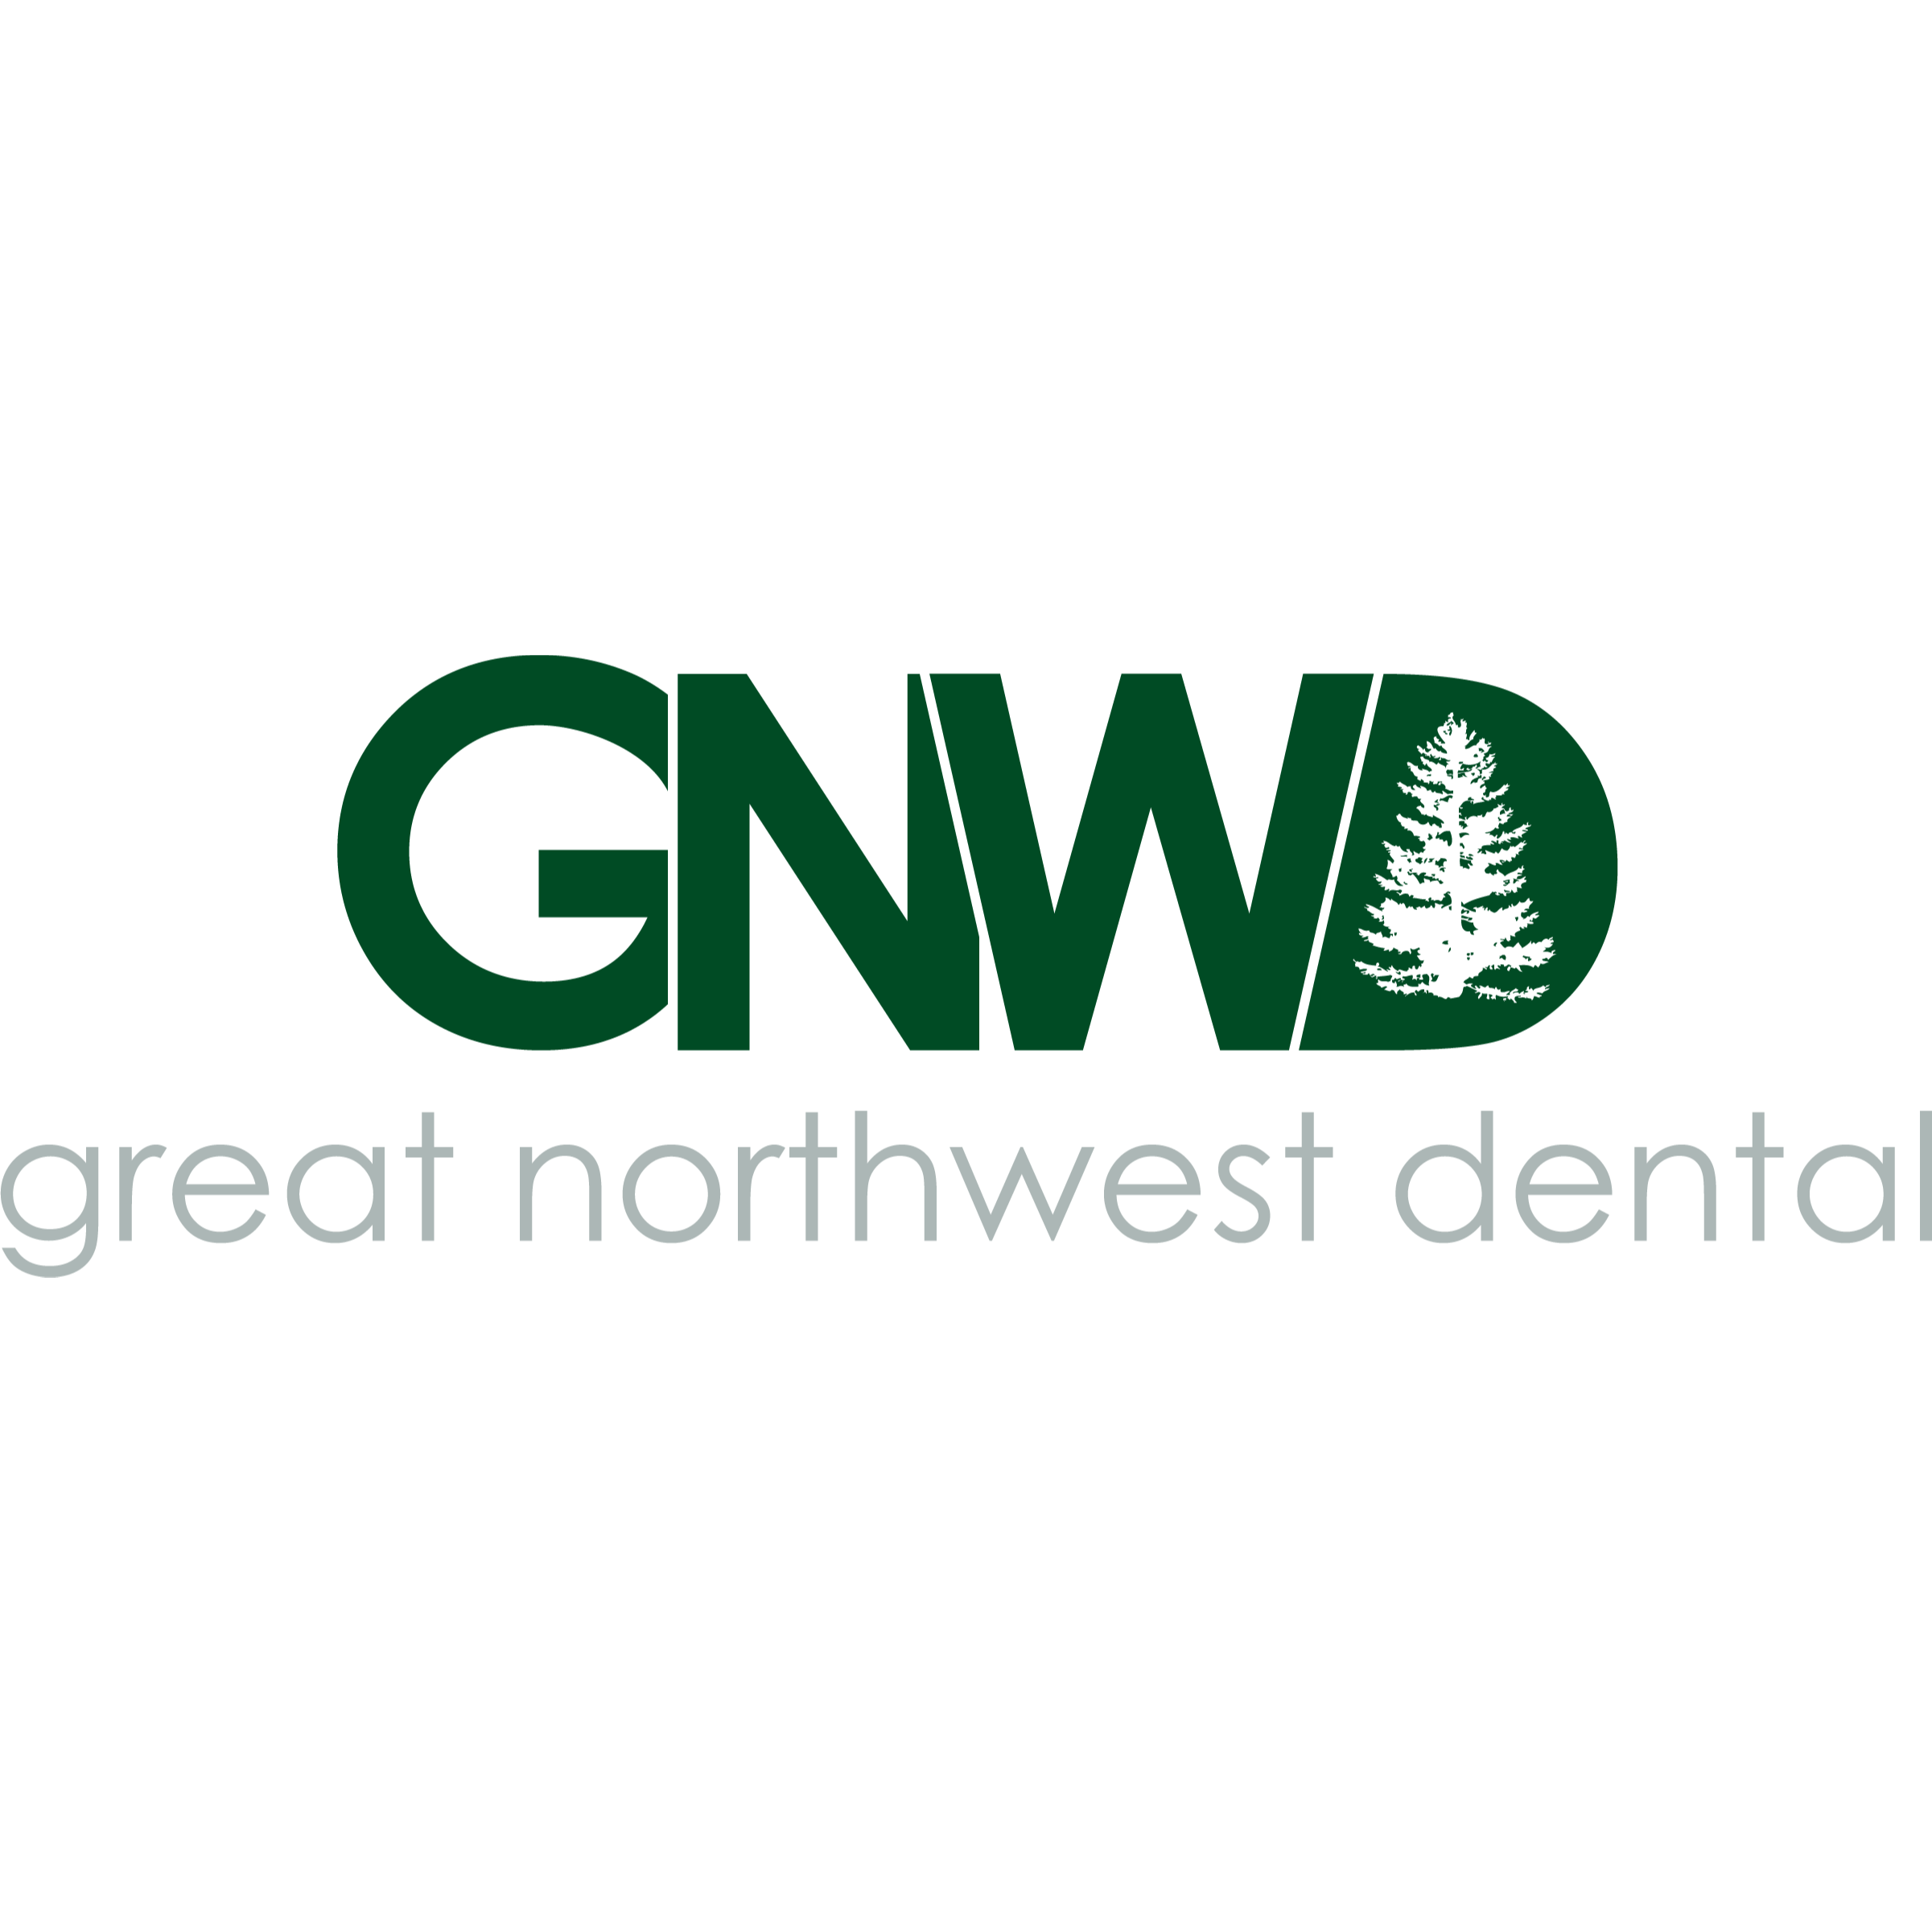 Great Northwest Dental